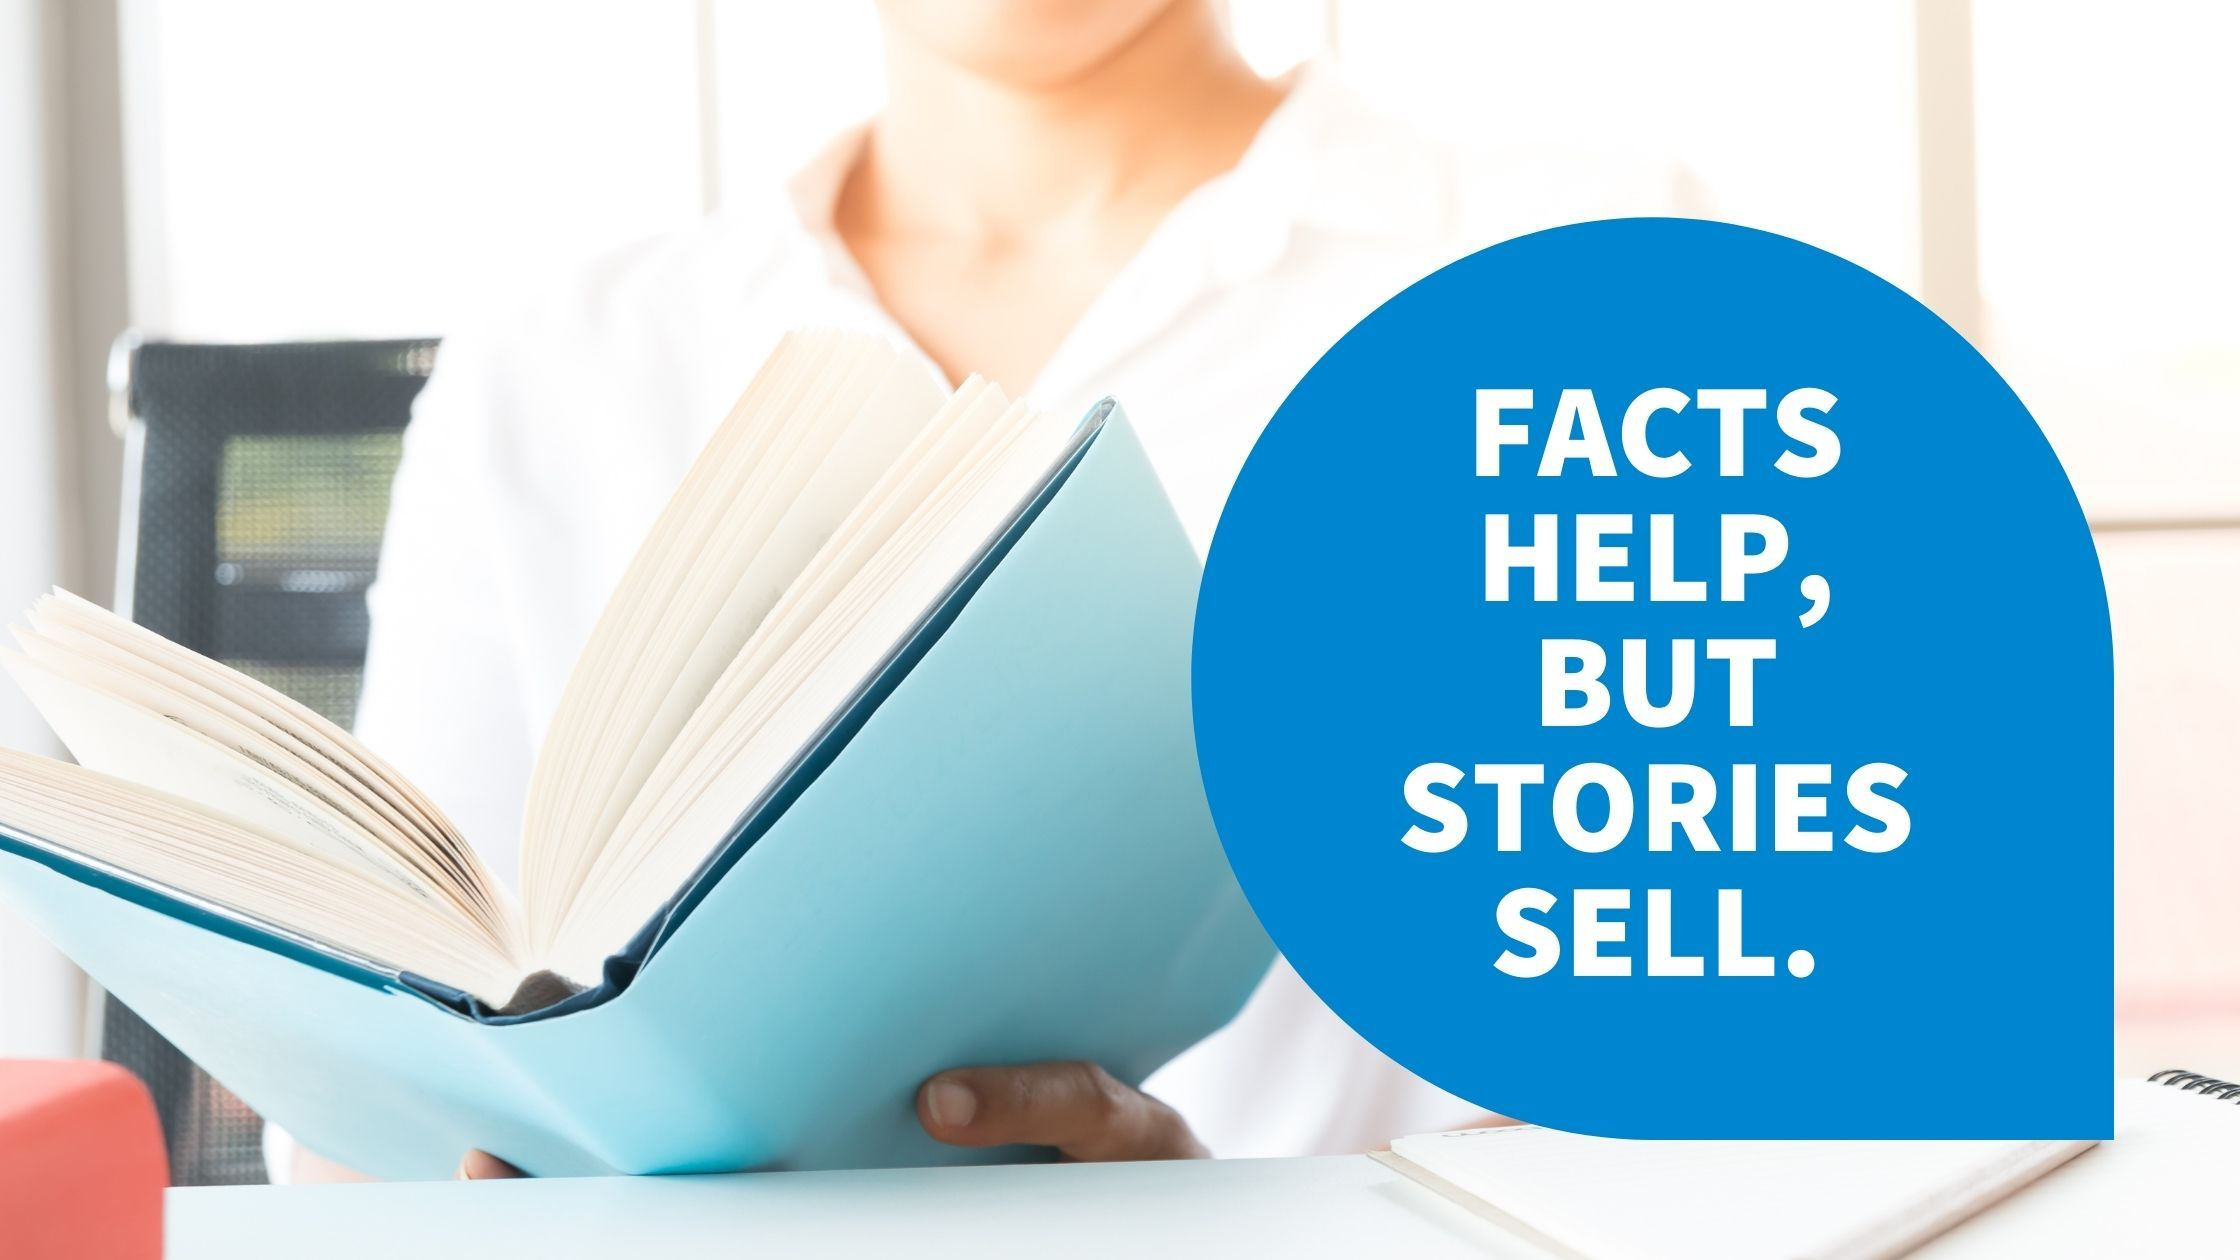 Facts help, but stories sell.